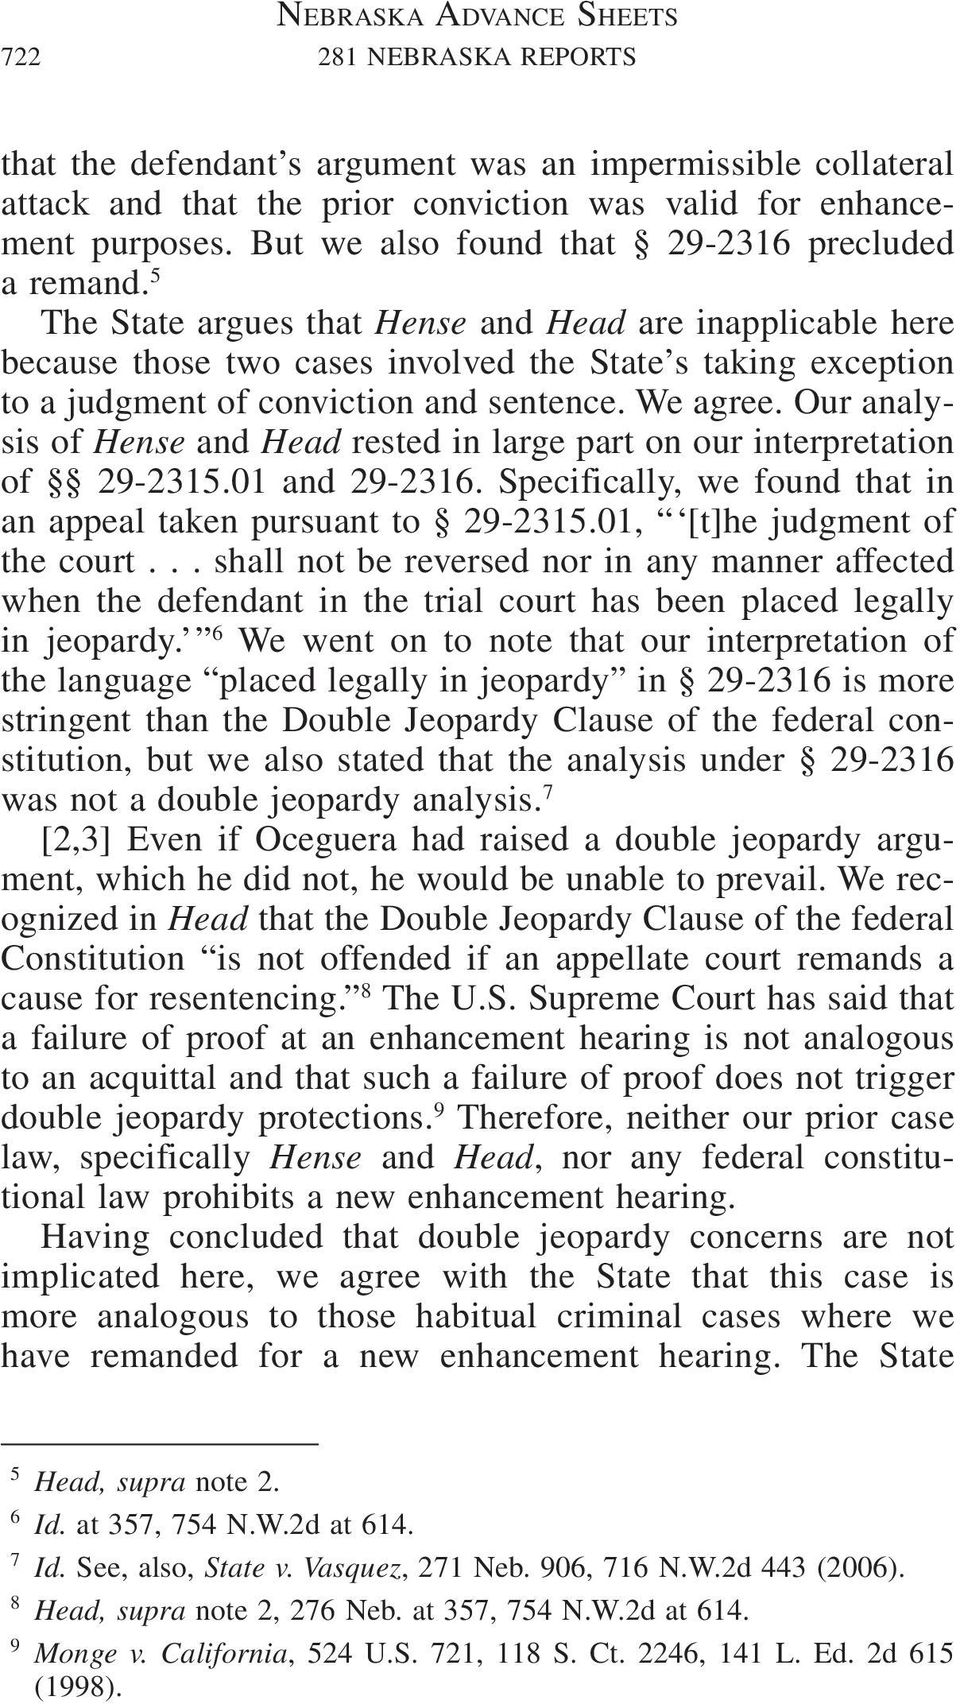 5 The State argues that Hense and Head are inapplicable here because those two cases involved the State s taking exception to a judgment of conviction and sentence. We agree.